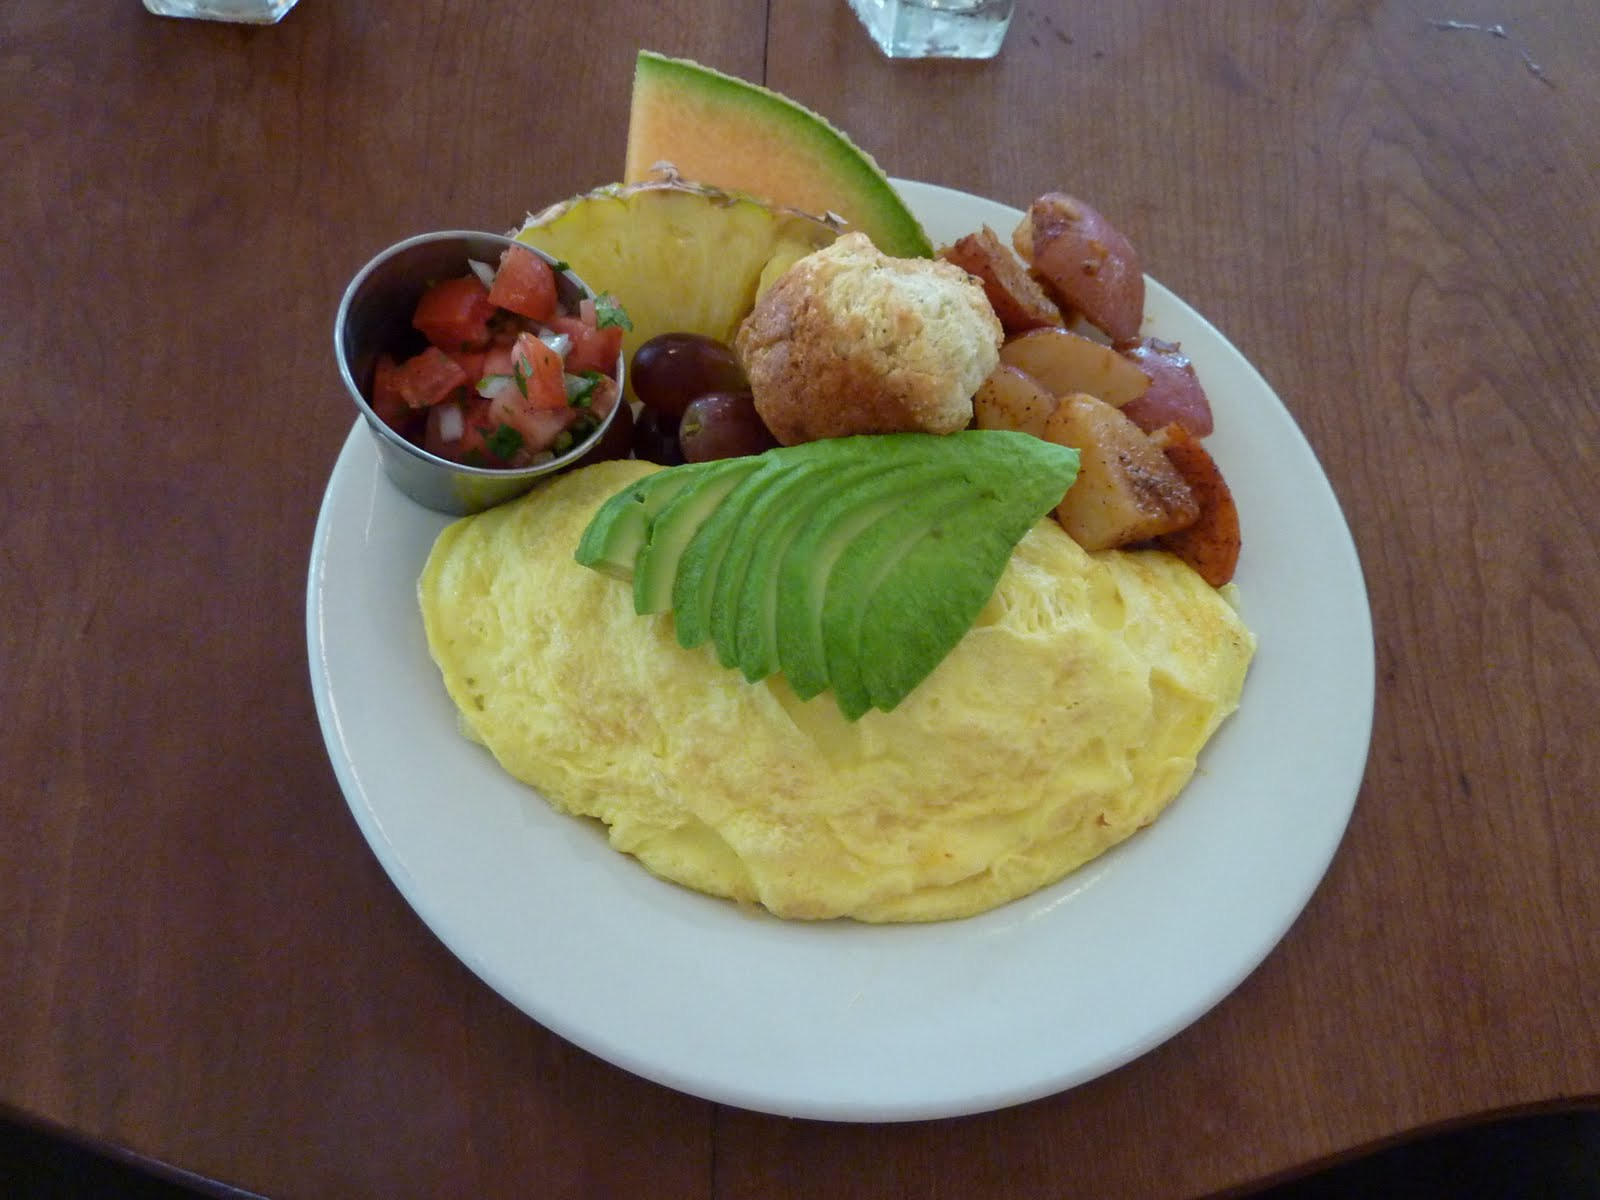 avocado omelette which puts the yum back into wholesome goodness